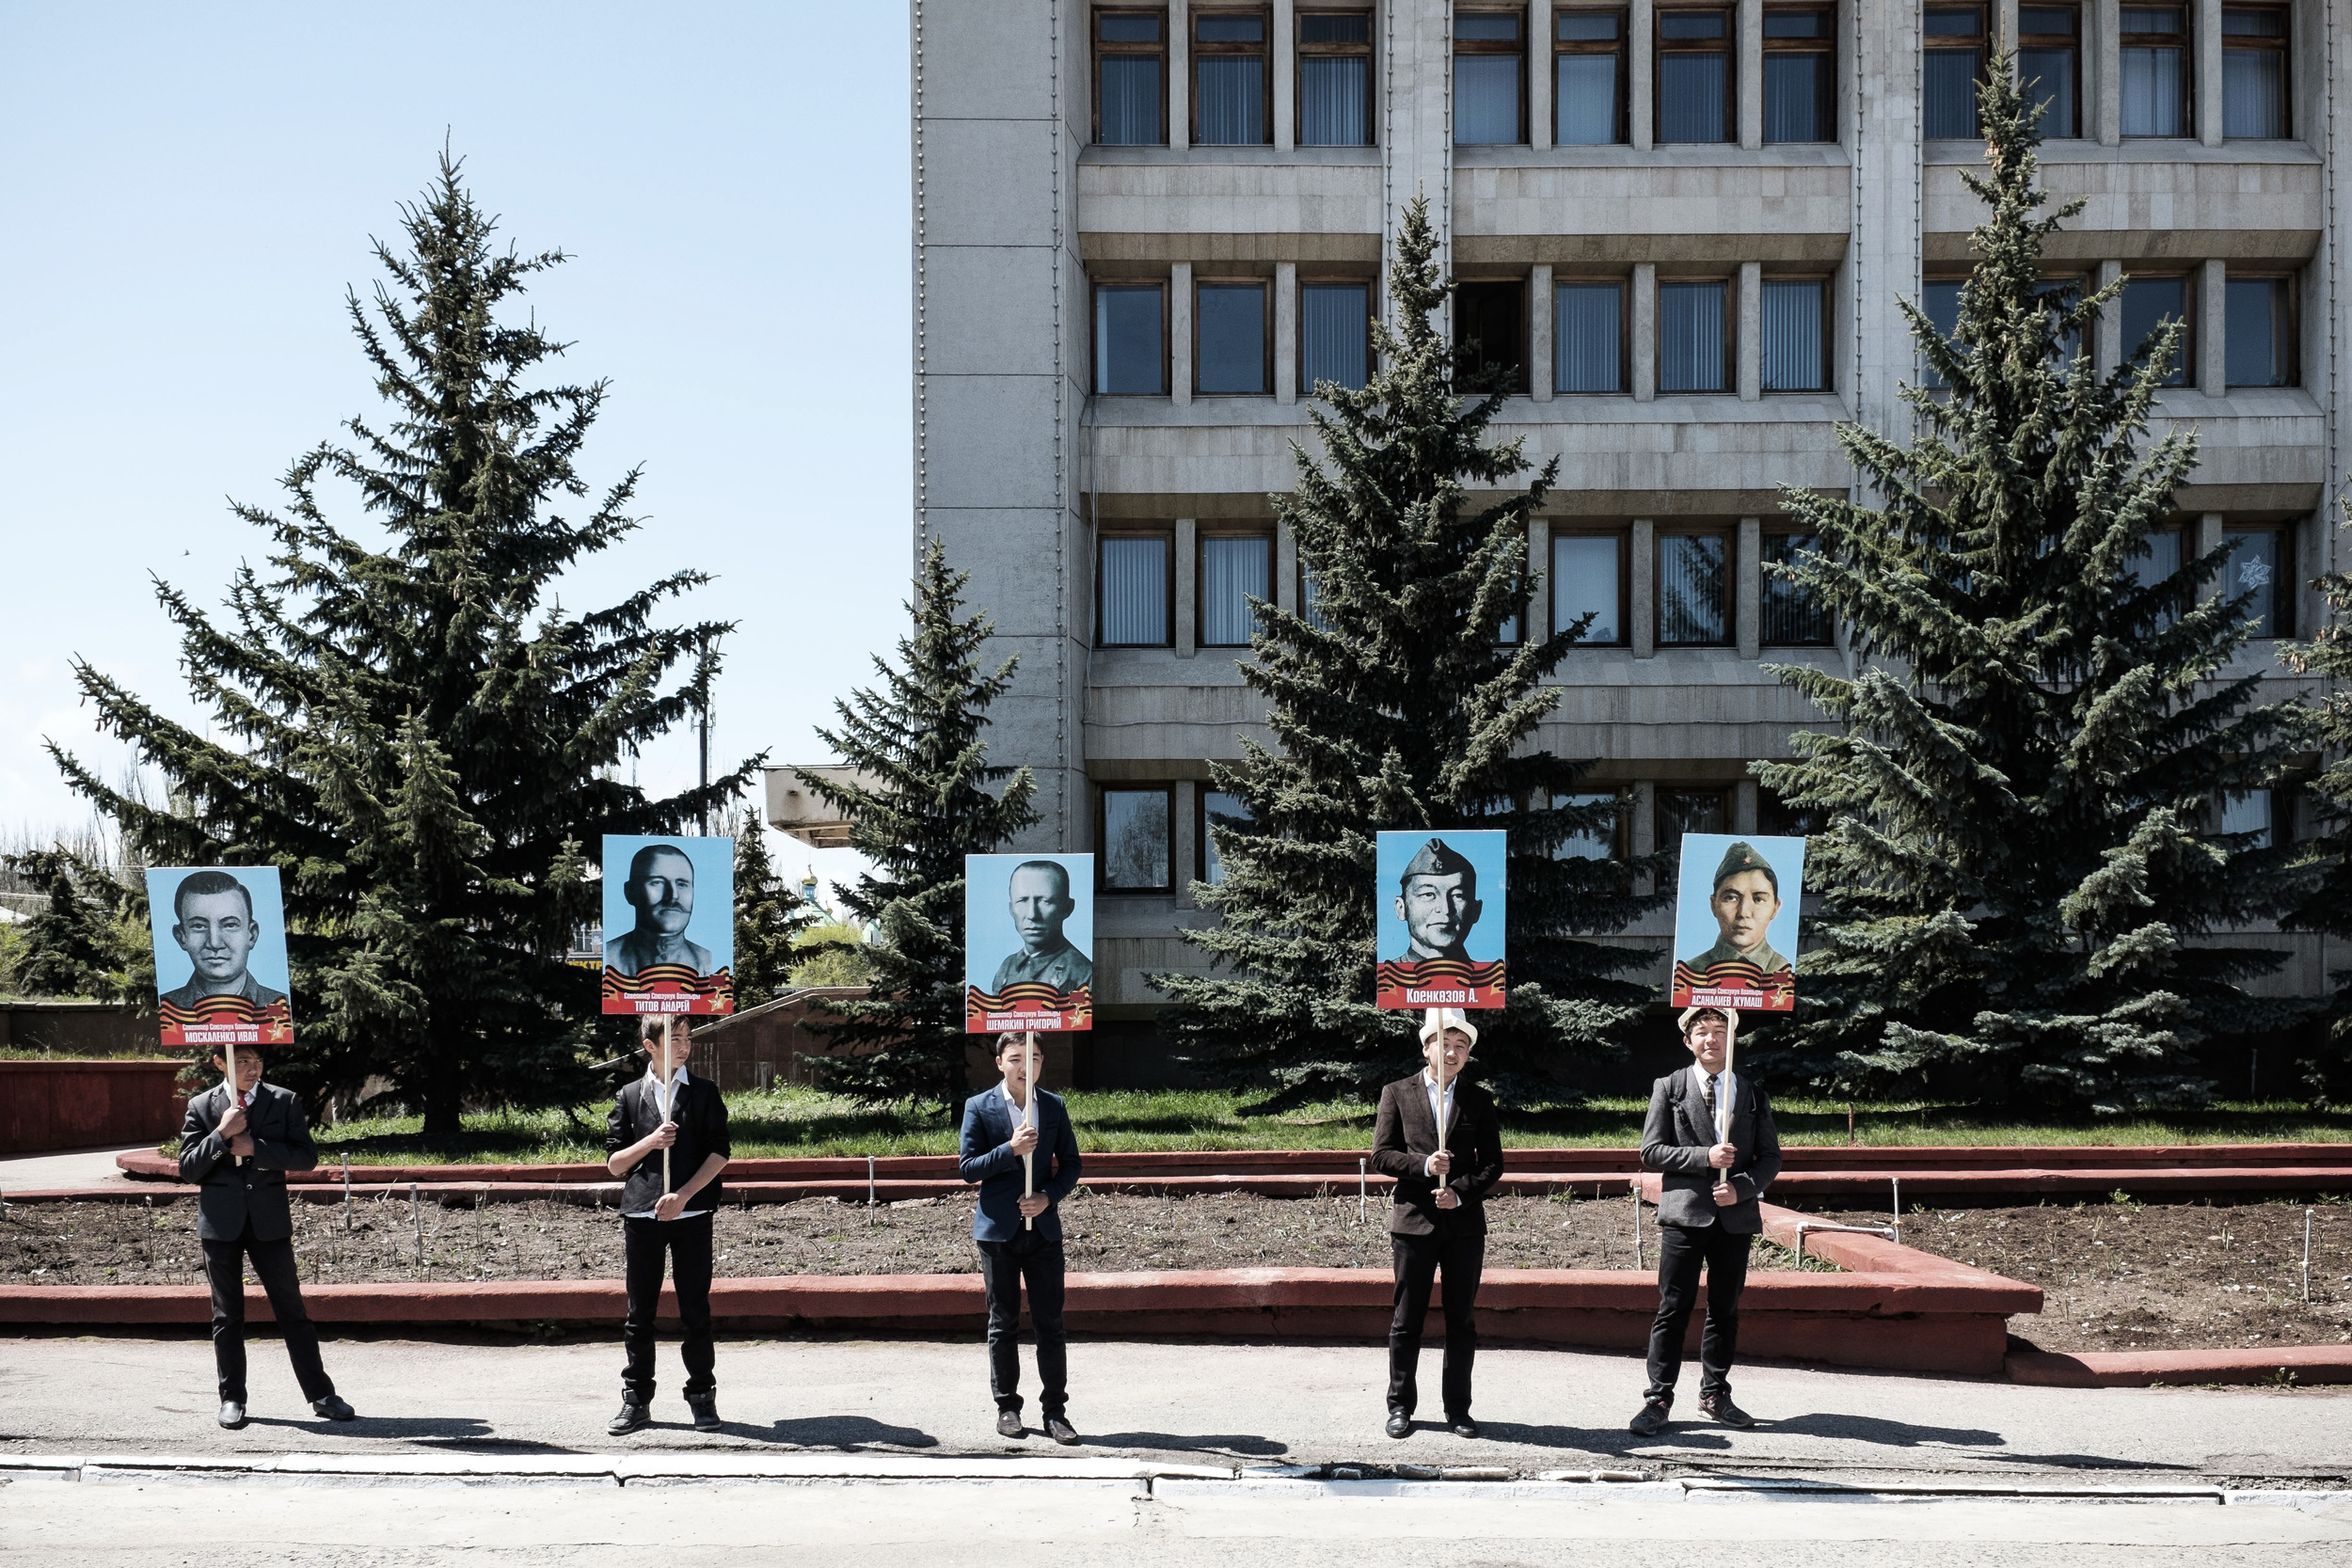 """""""Stalin, Zhukov, Rokossovsky, this is the right order"""" - said the director of the military parade to local high school students in Karakol on a rehearsal for the 70th anniversary parade of the Great Victory. Karakol, East-Kyrgyzstan, May 4, 2015"""